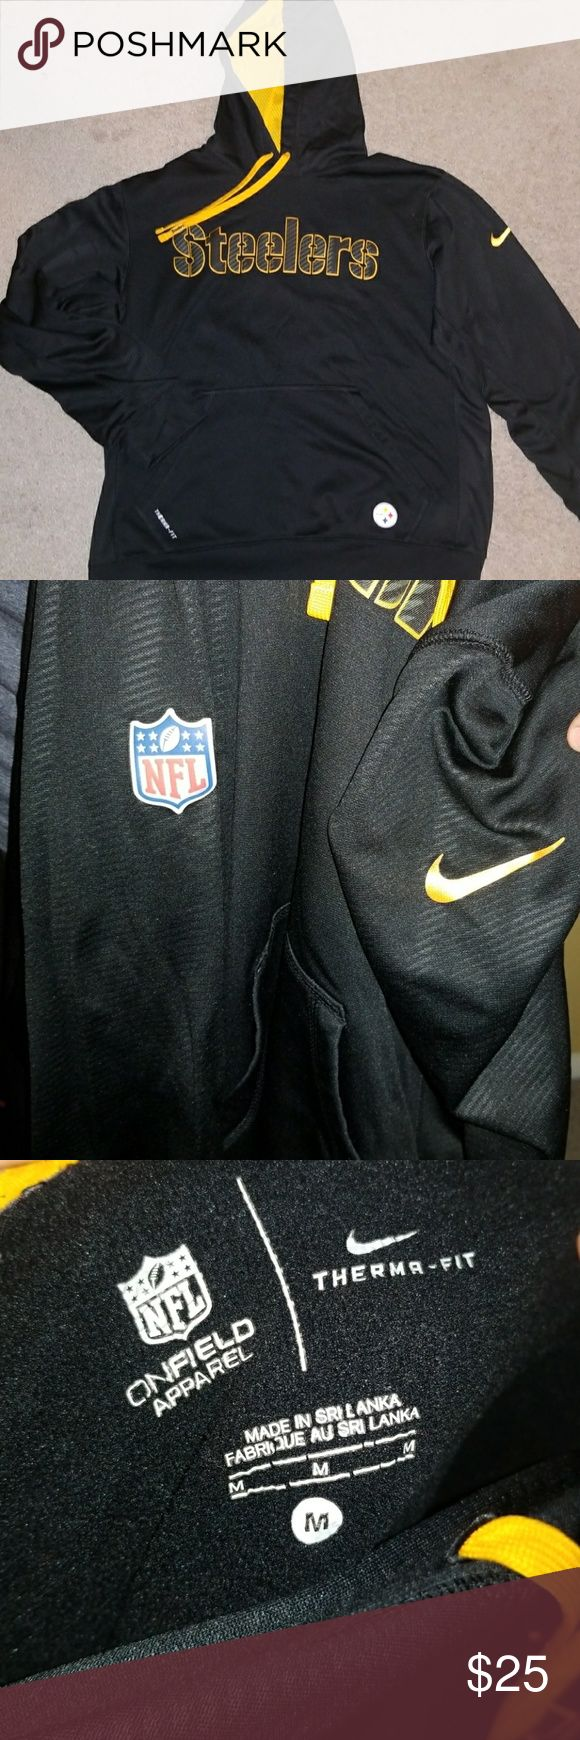 Men's Nike dry fit hoodie Great condition Steelers dry fit pull over hoodie size mens medium. No flaws. Nike Jackets & Coats